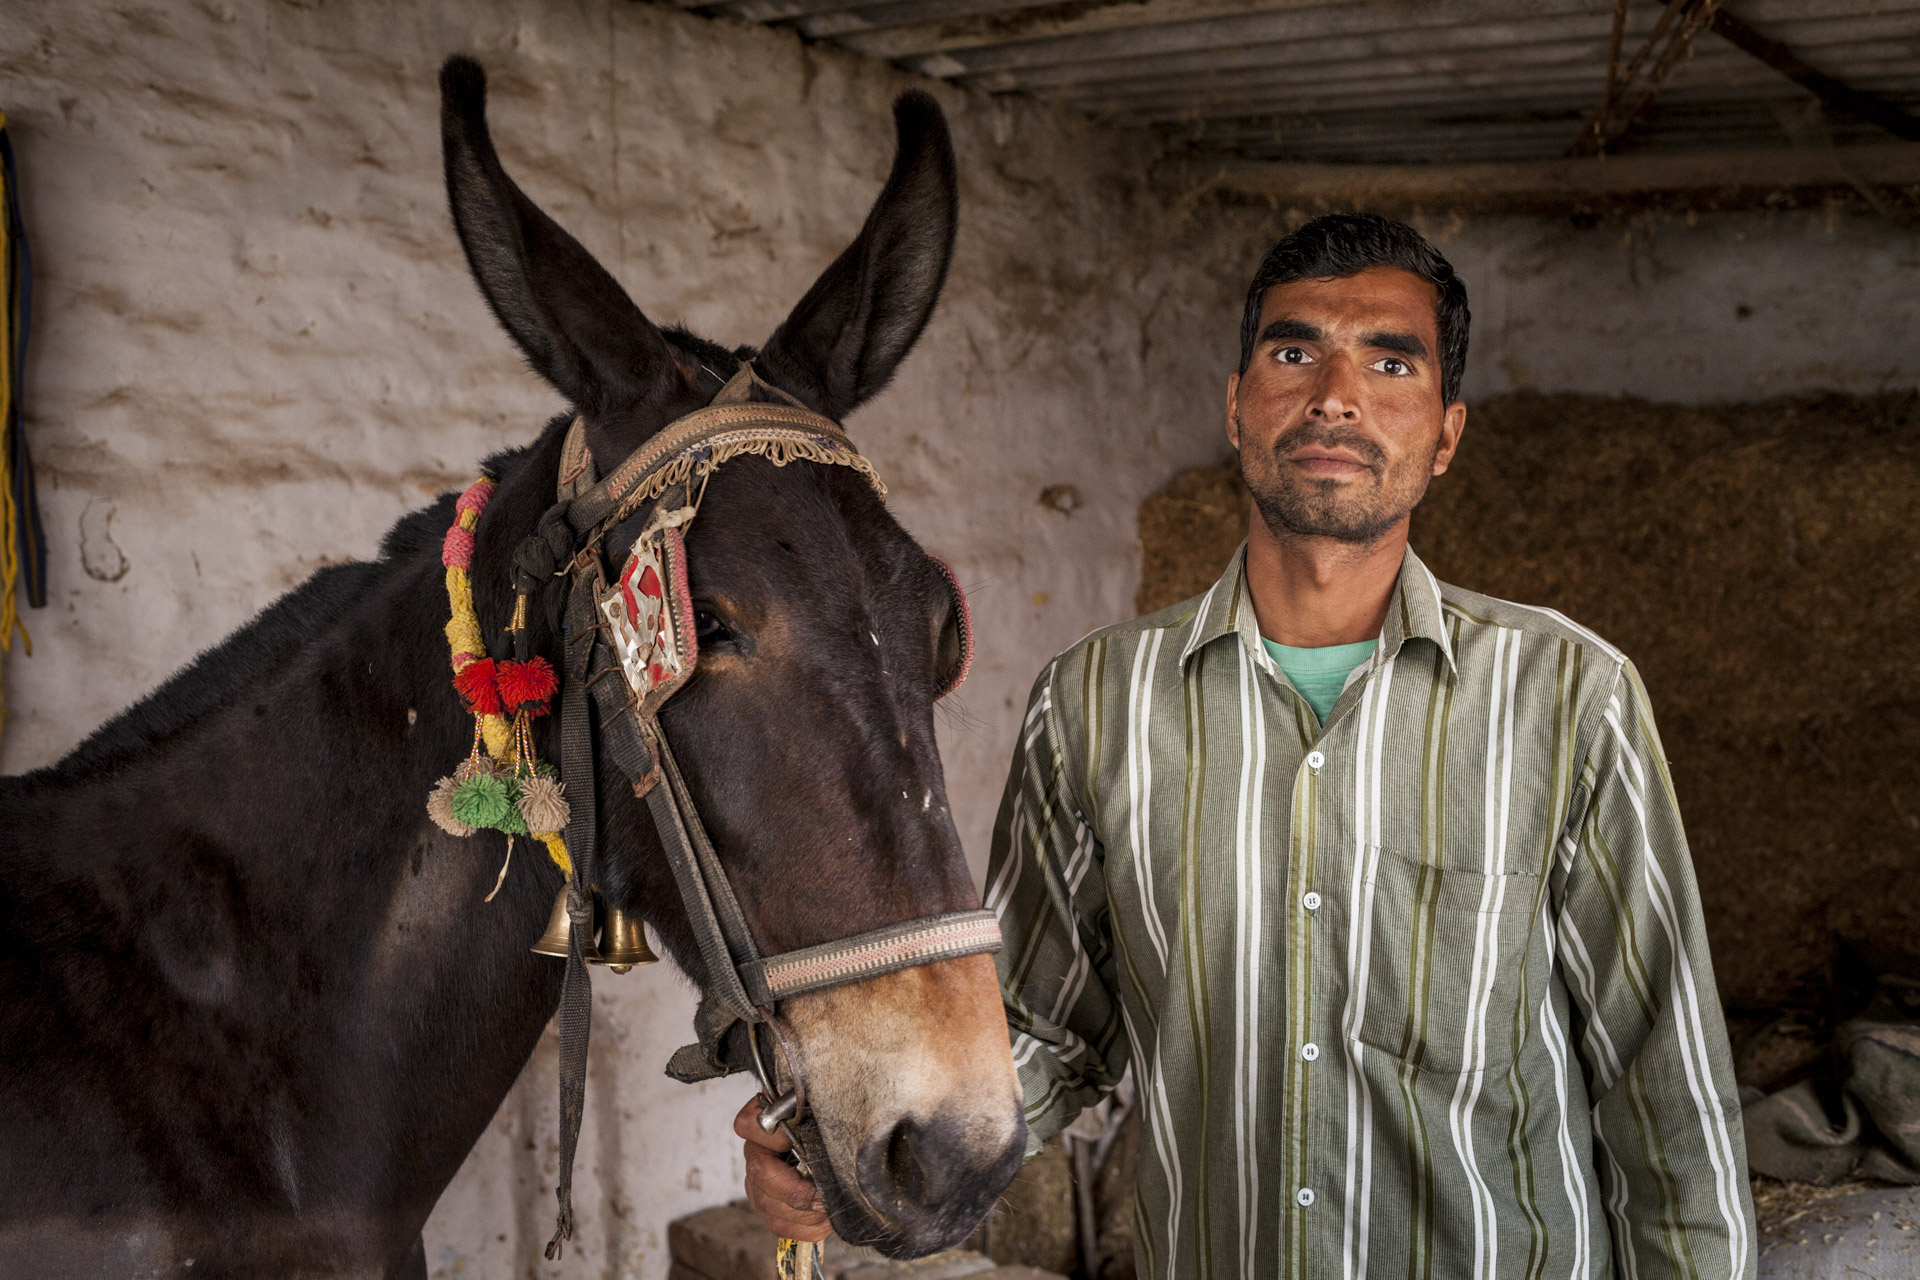 Khesikala village 1 km from Faridabad KSN brick kiln near Delhi, India. 